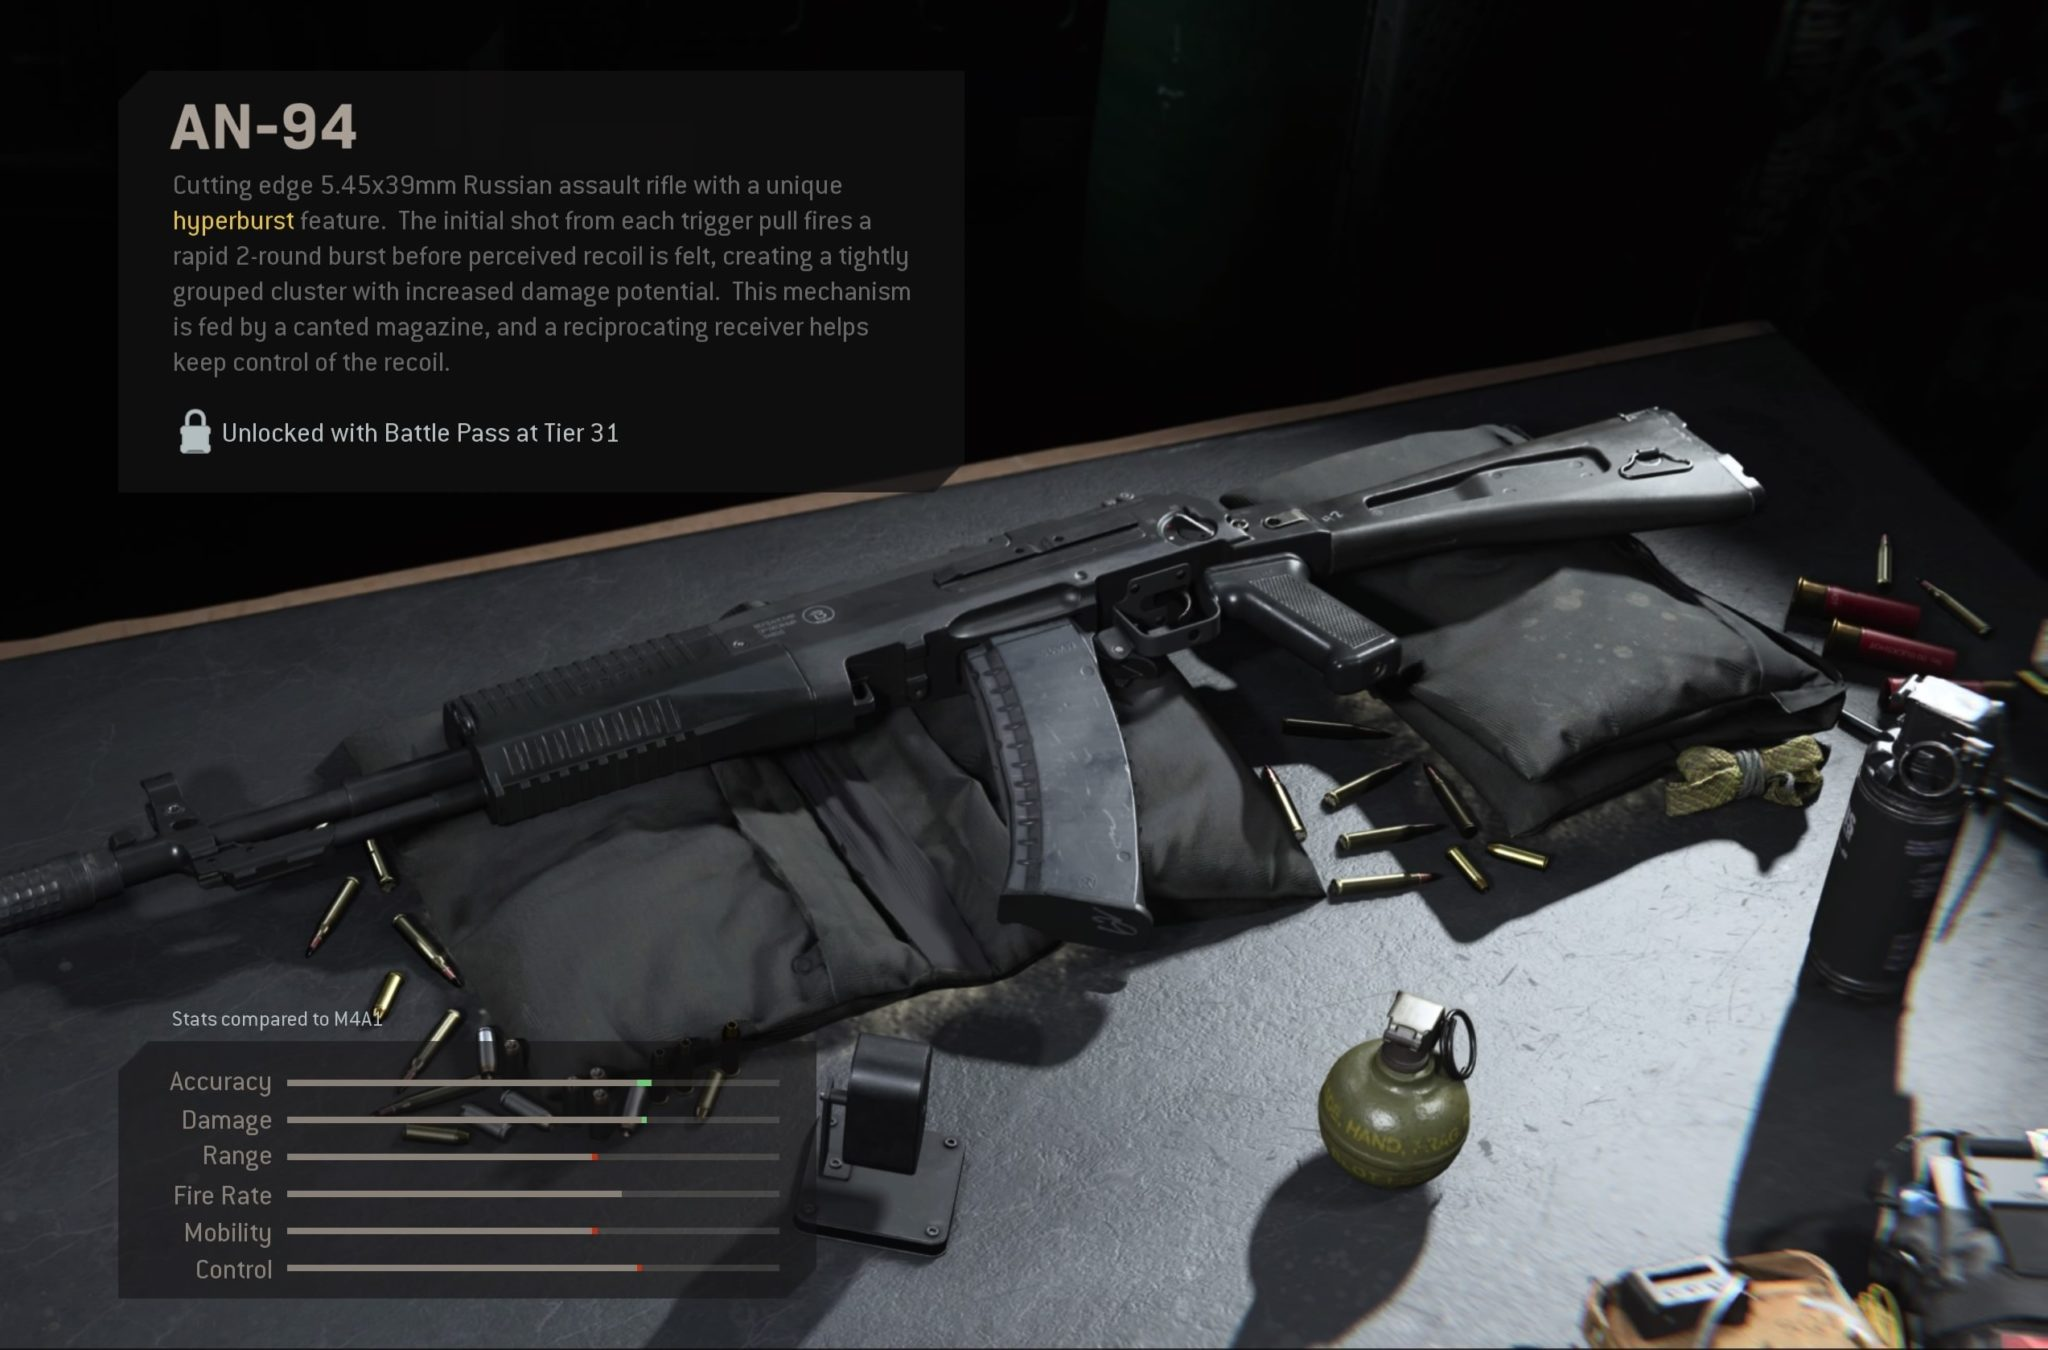 The AN-94 assault rifle as it appears in the Modern Wafare armory.